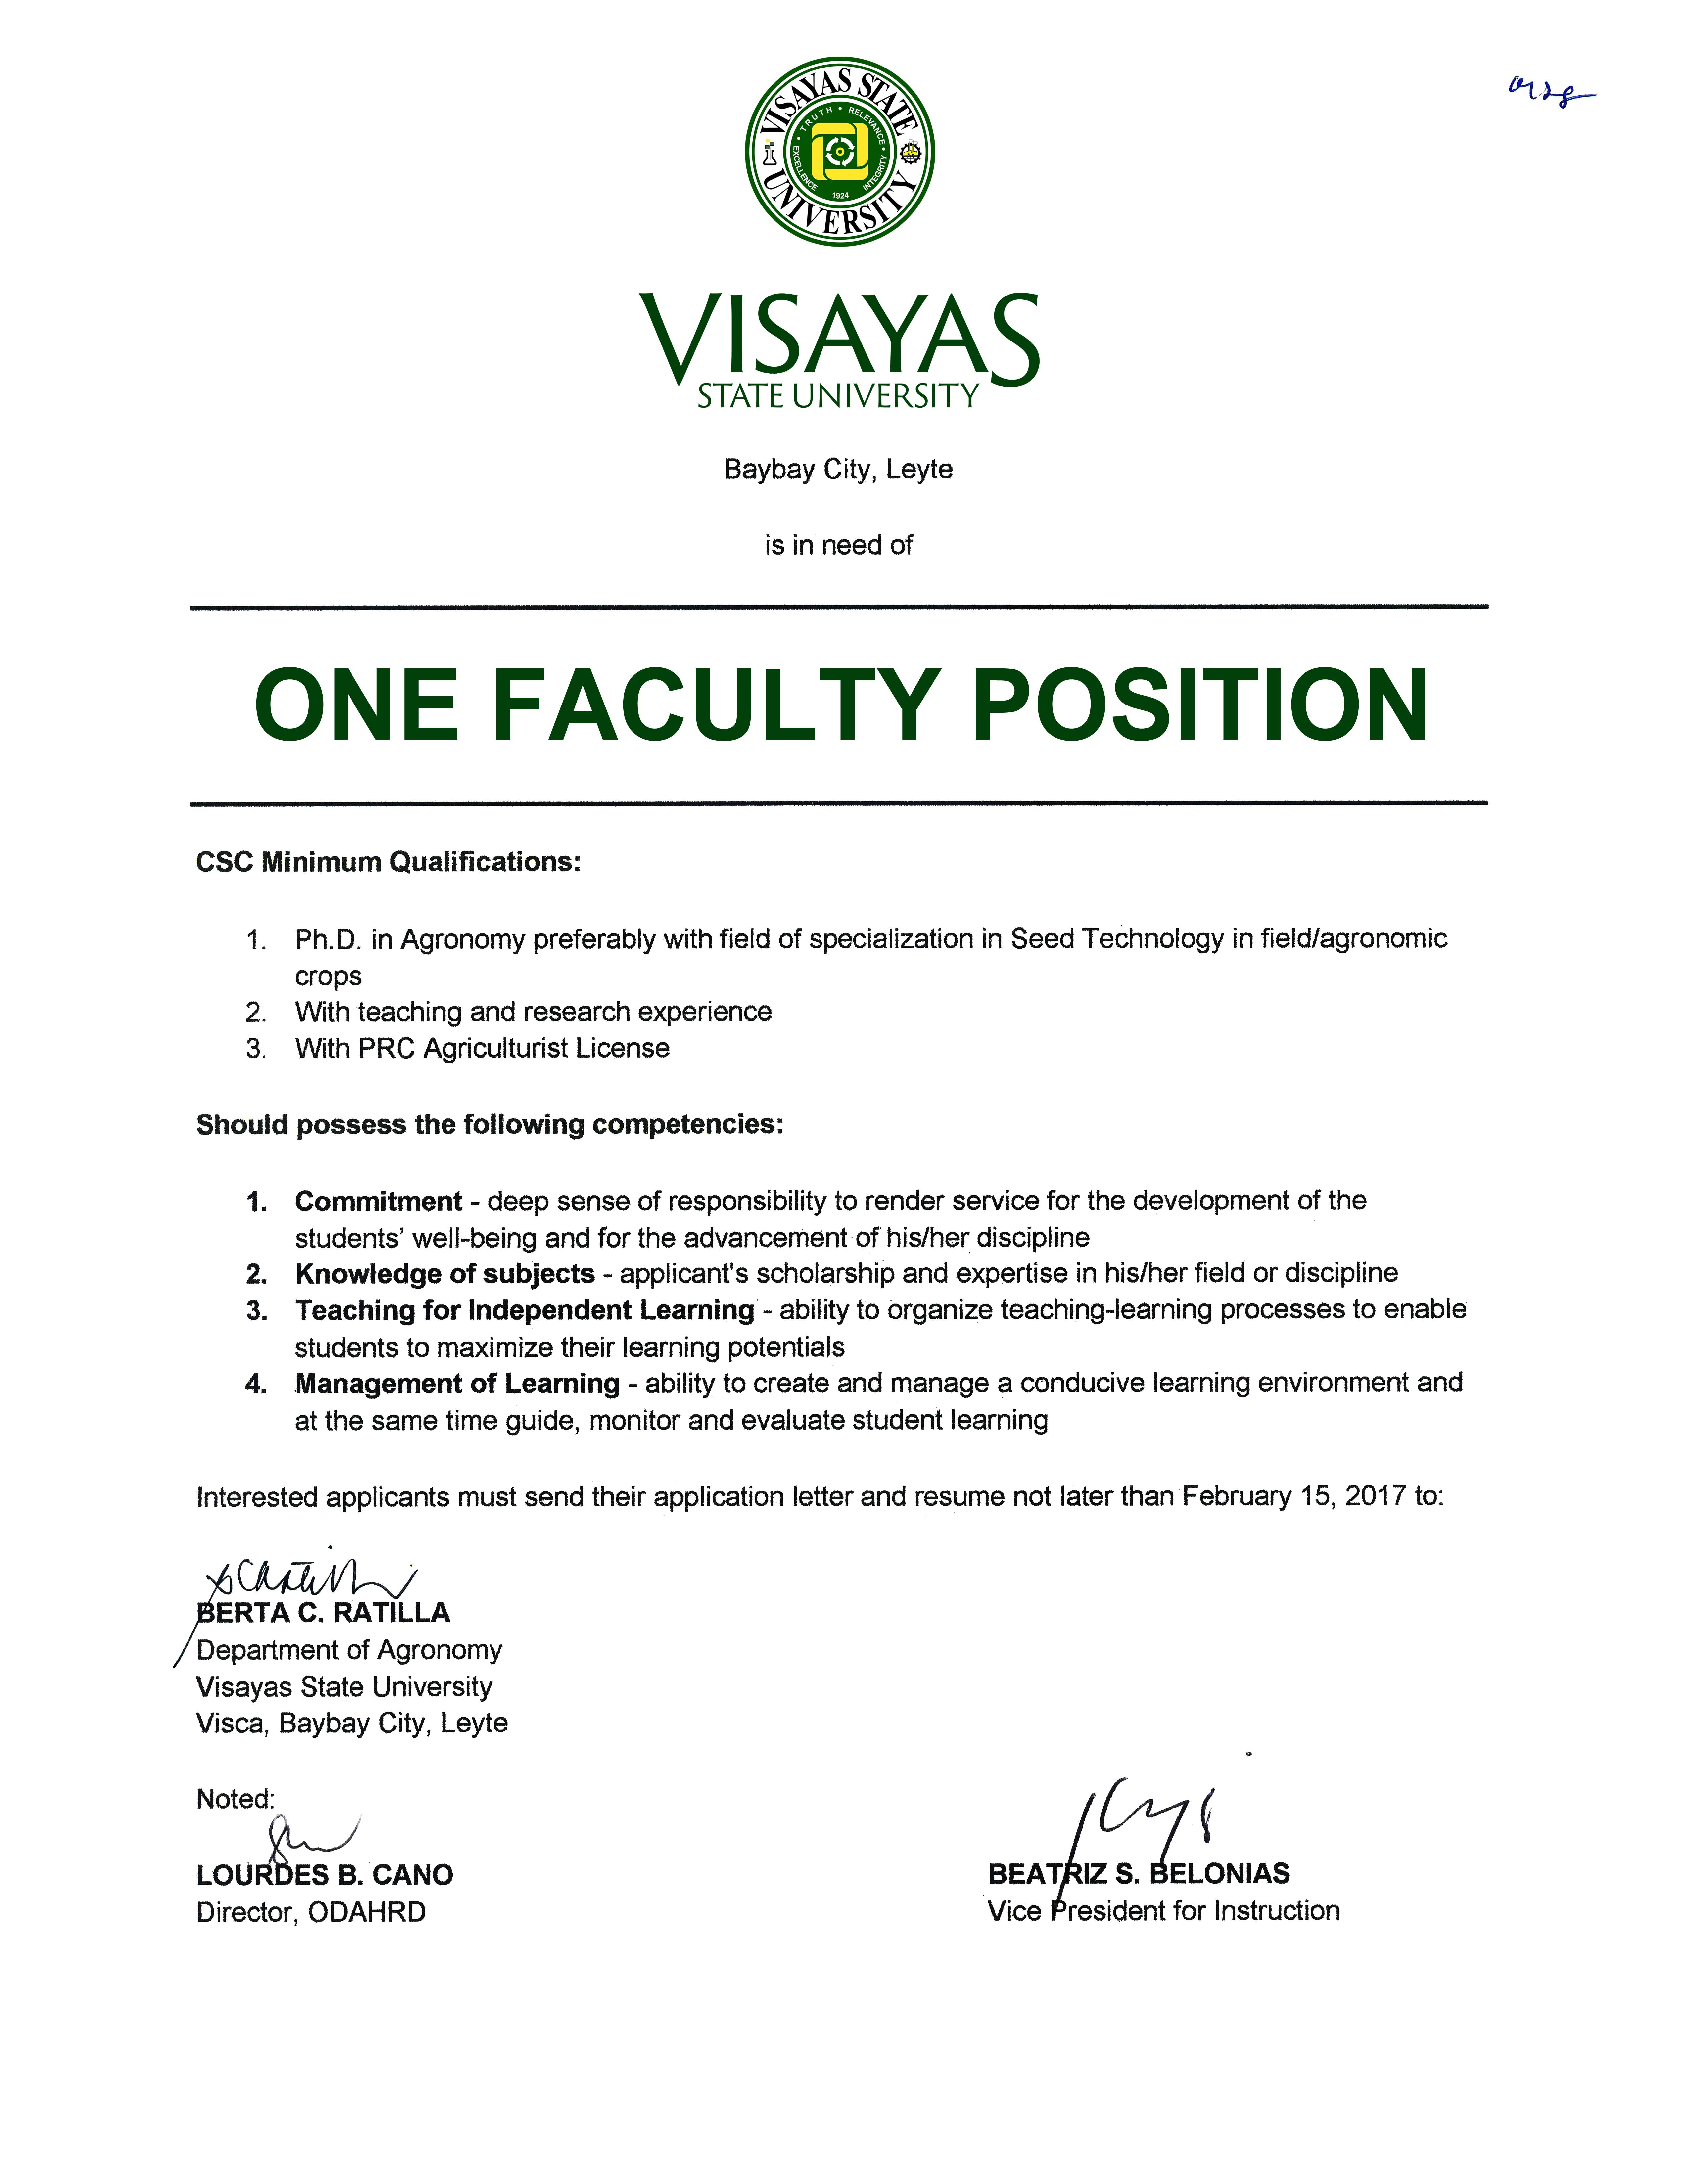 1 faculty position in agronomy